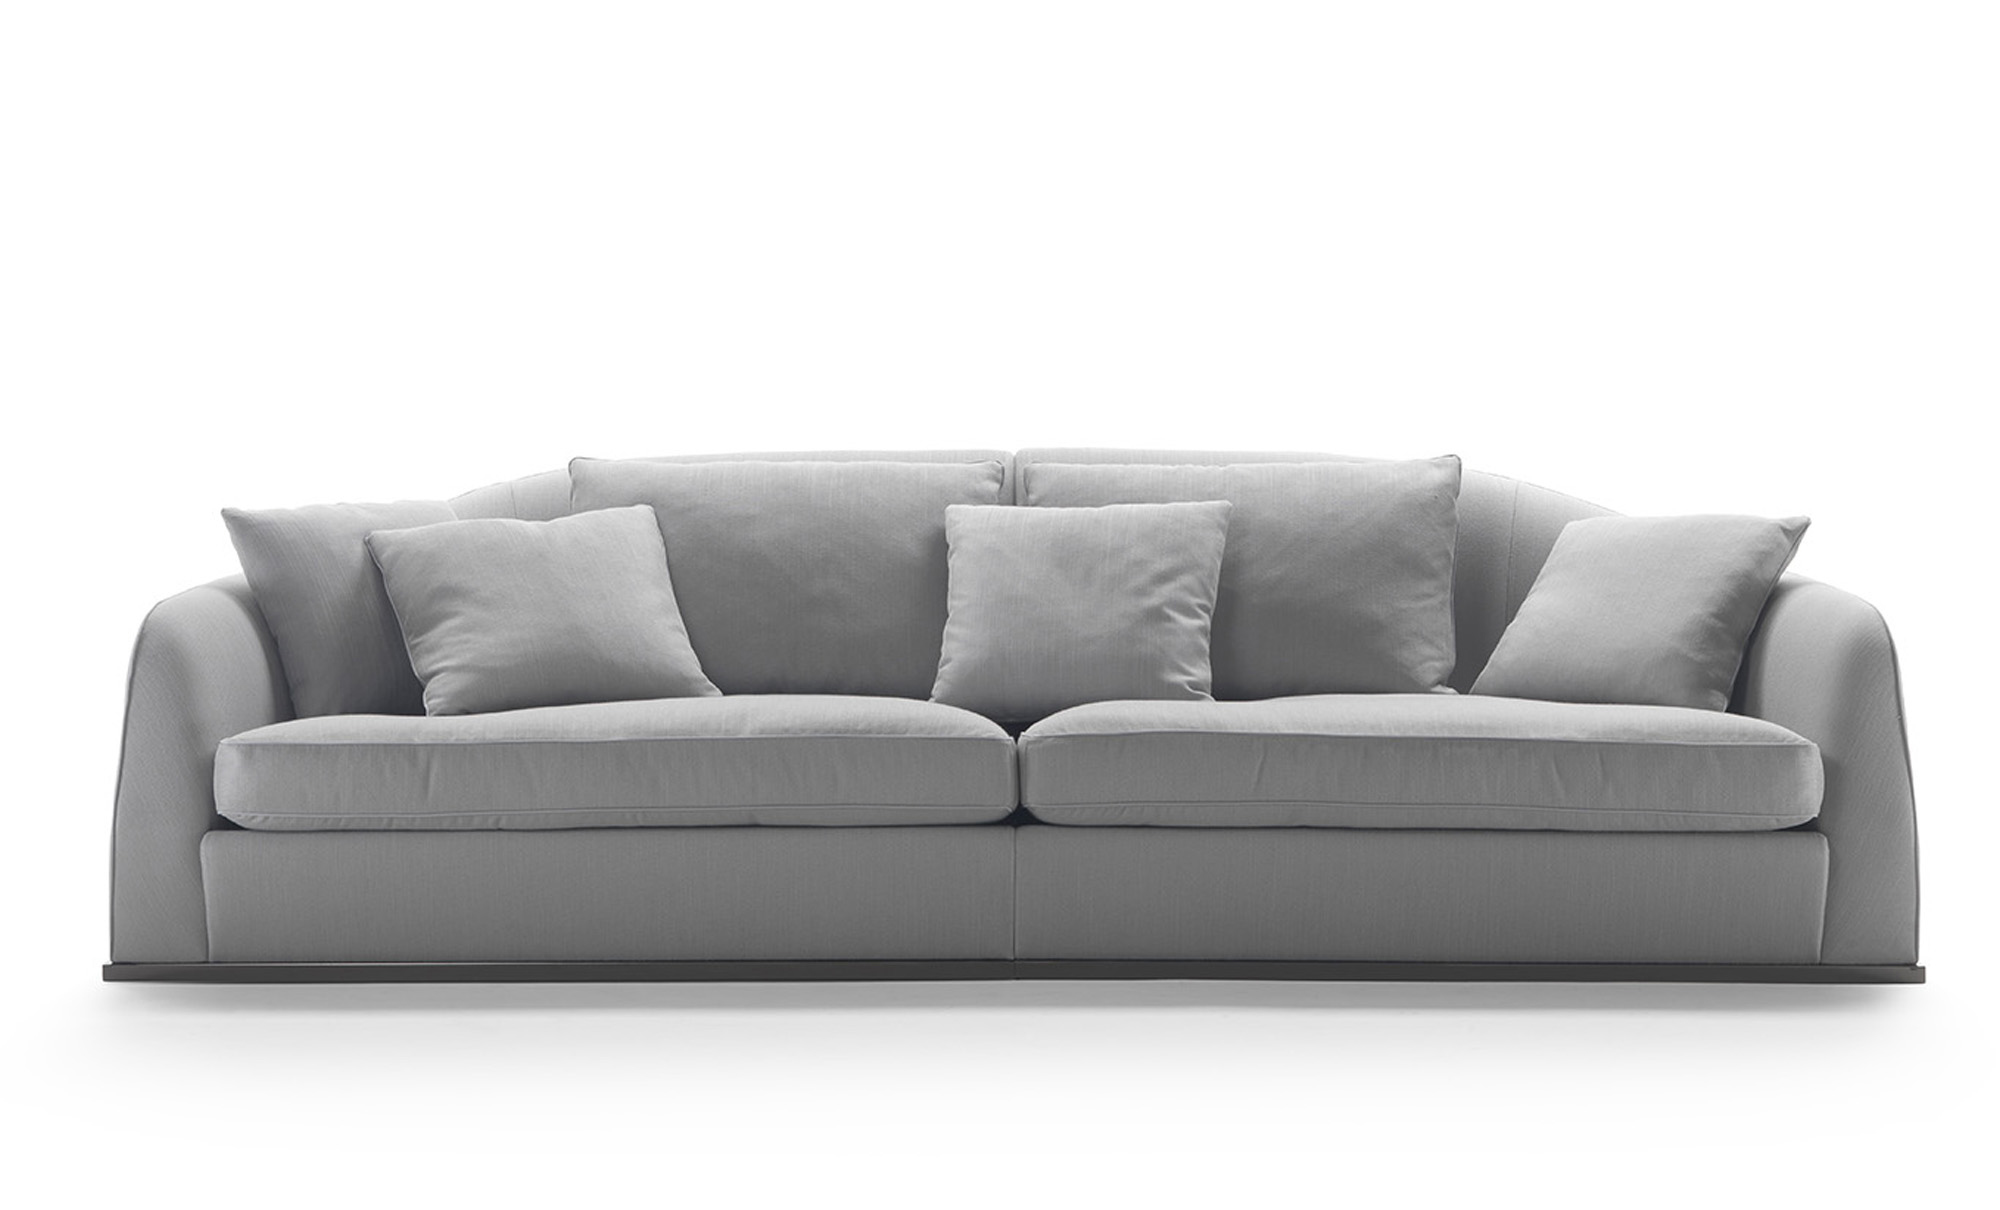 Alfred sofa fanuli furniture for Sofa for